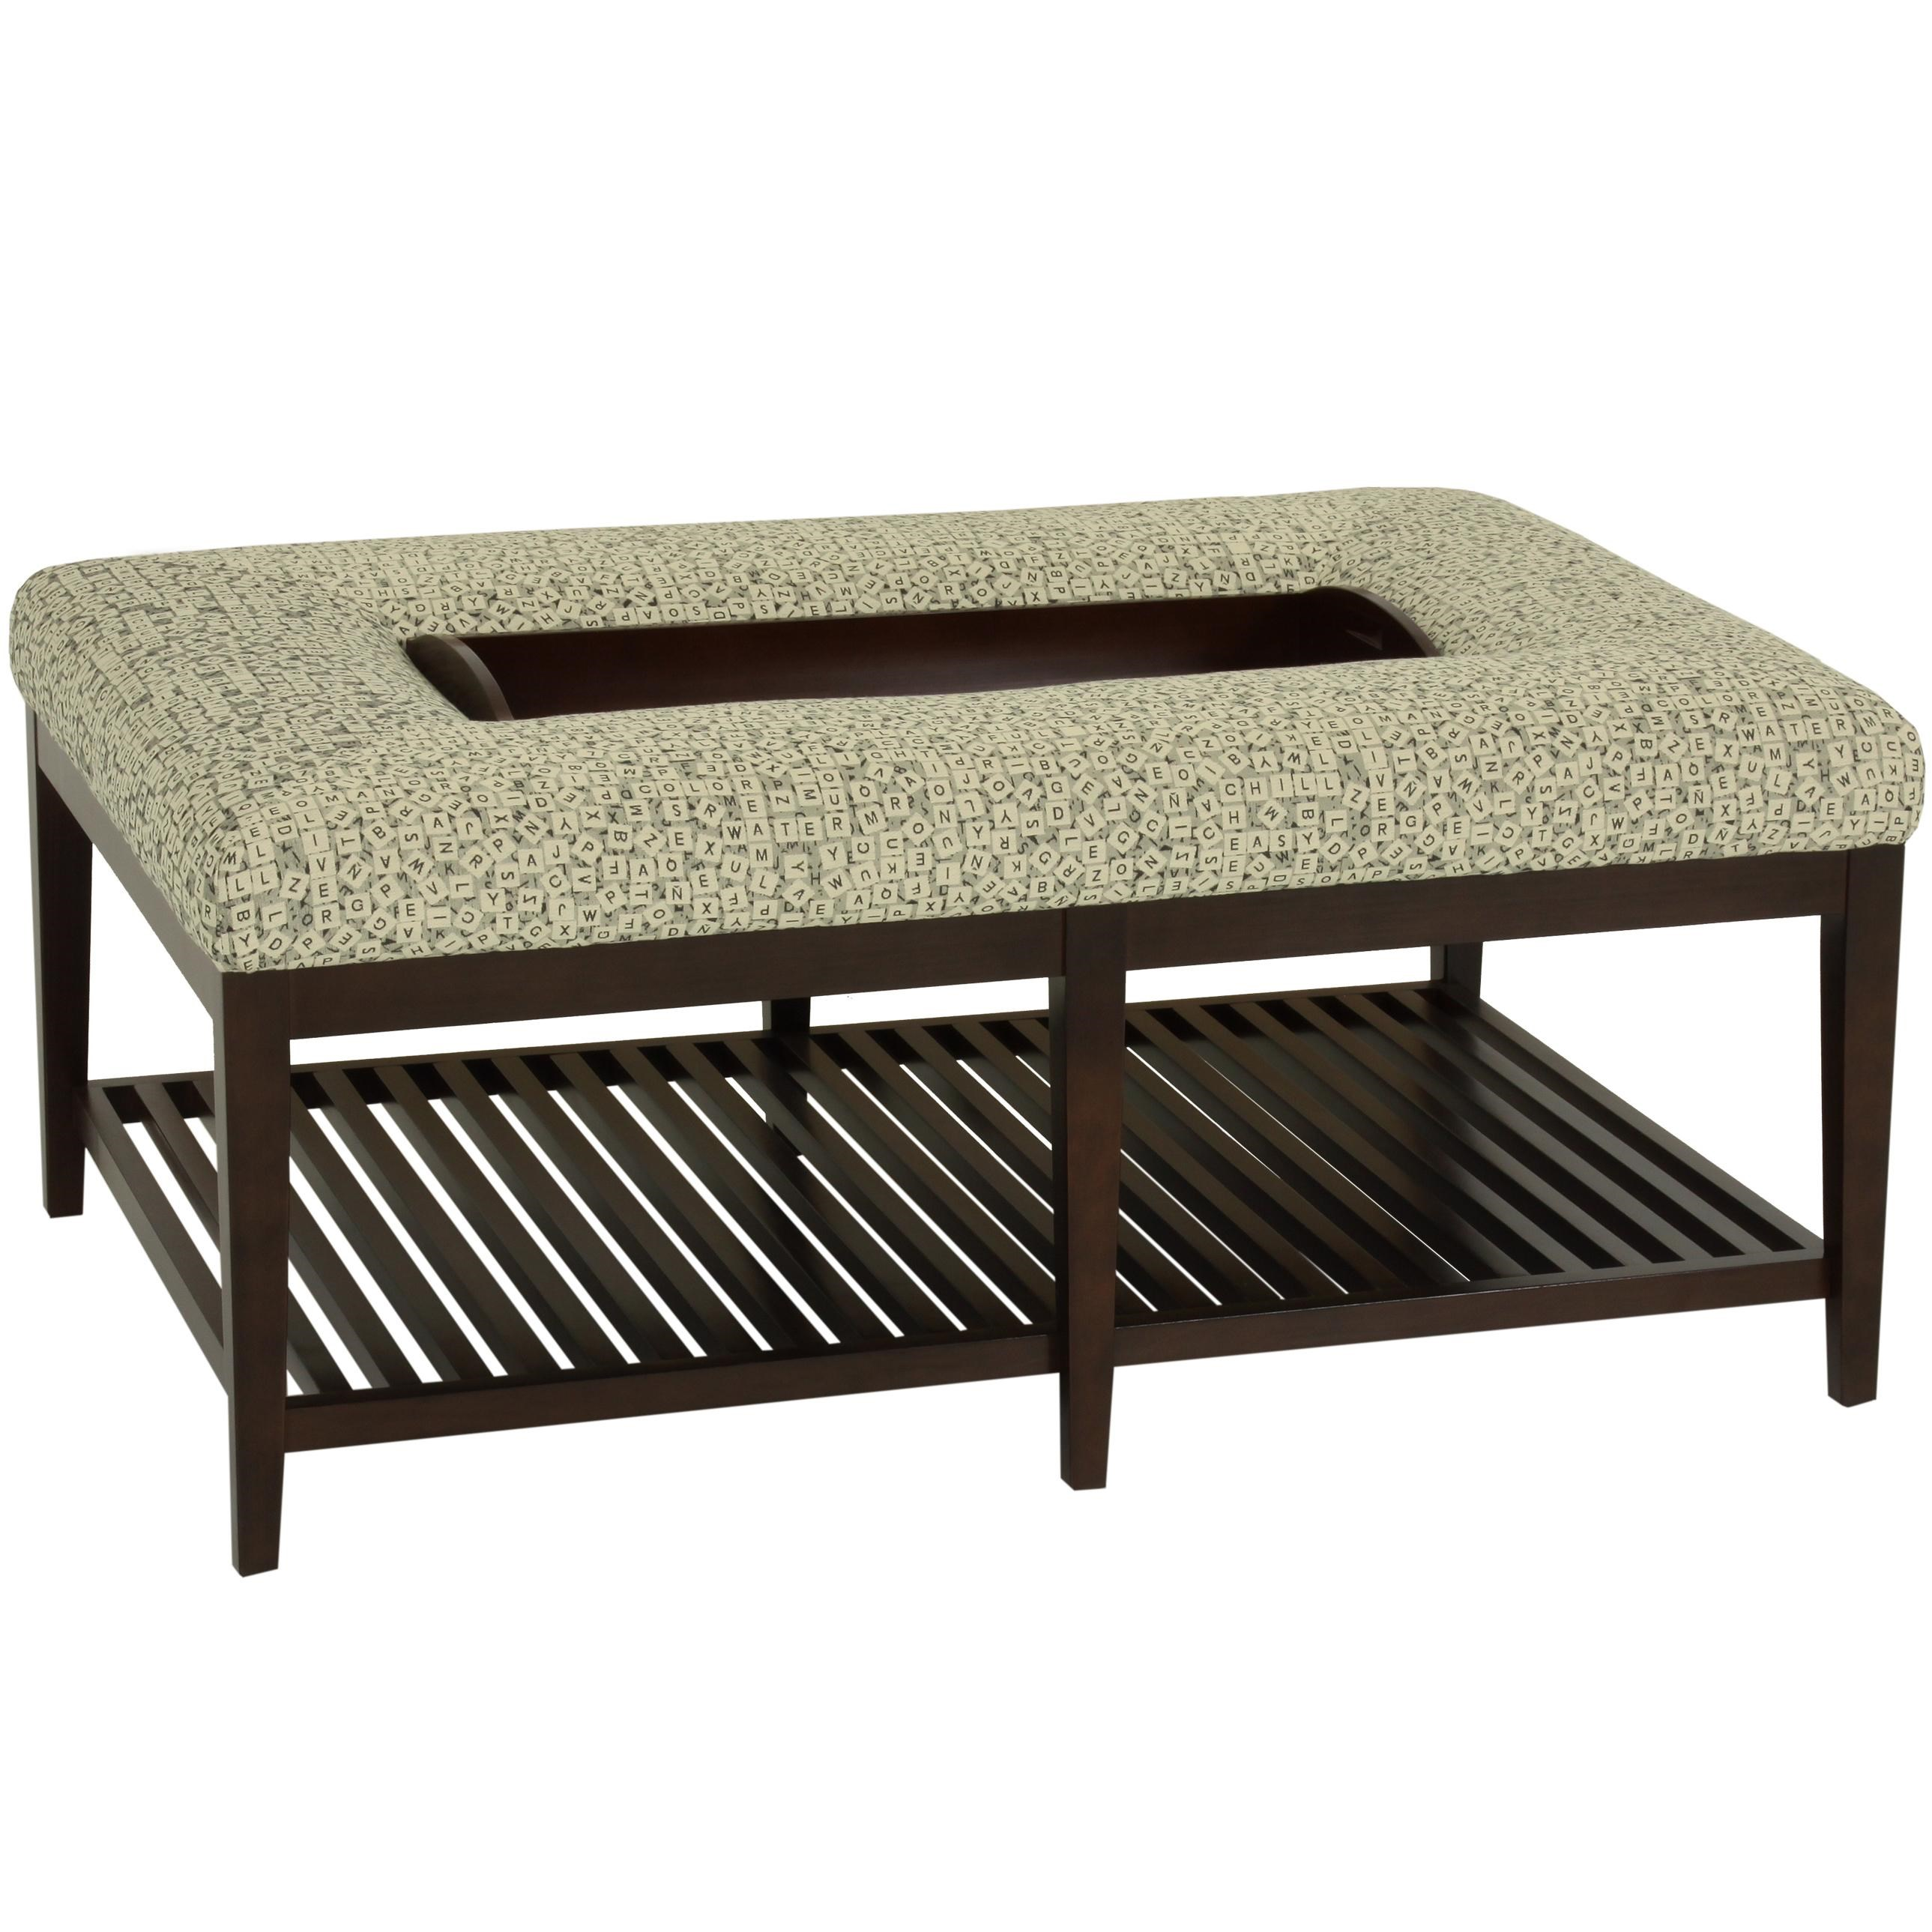 Shelton Contemporary Ottoman/Bench With Slatted Base And Tapered Block Feet  By Norwalk